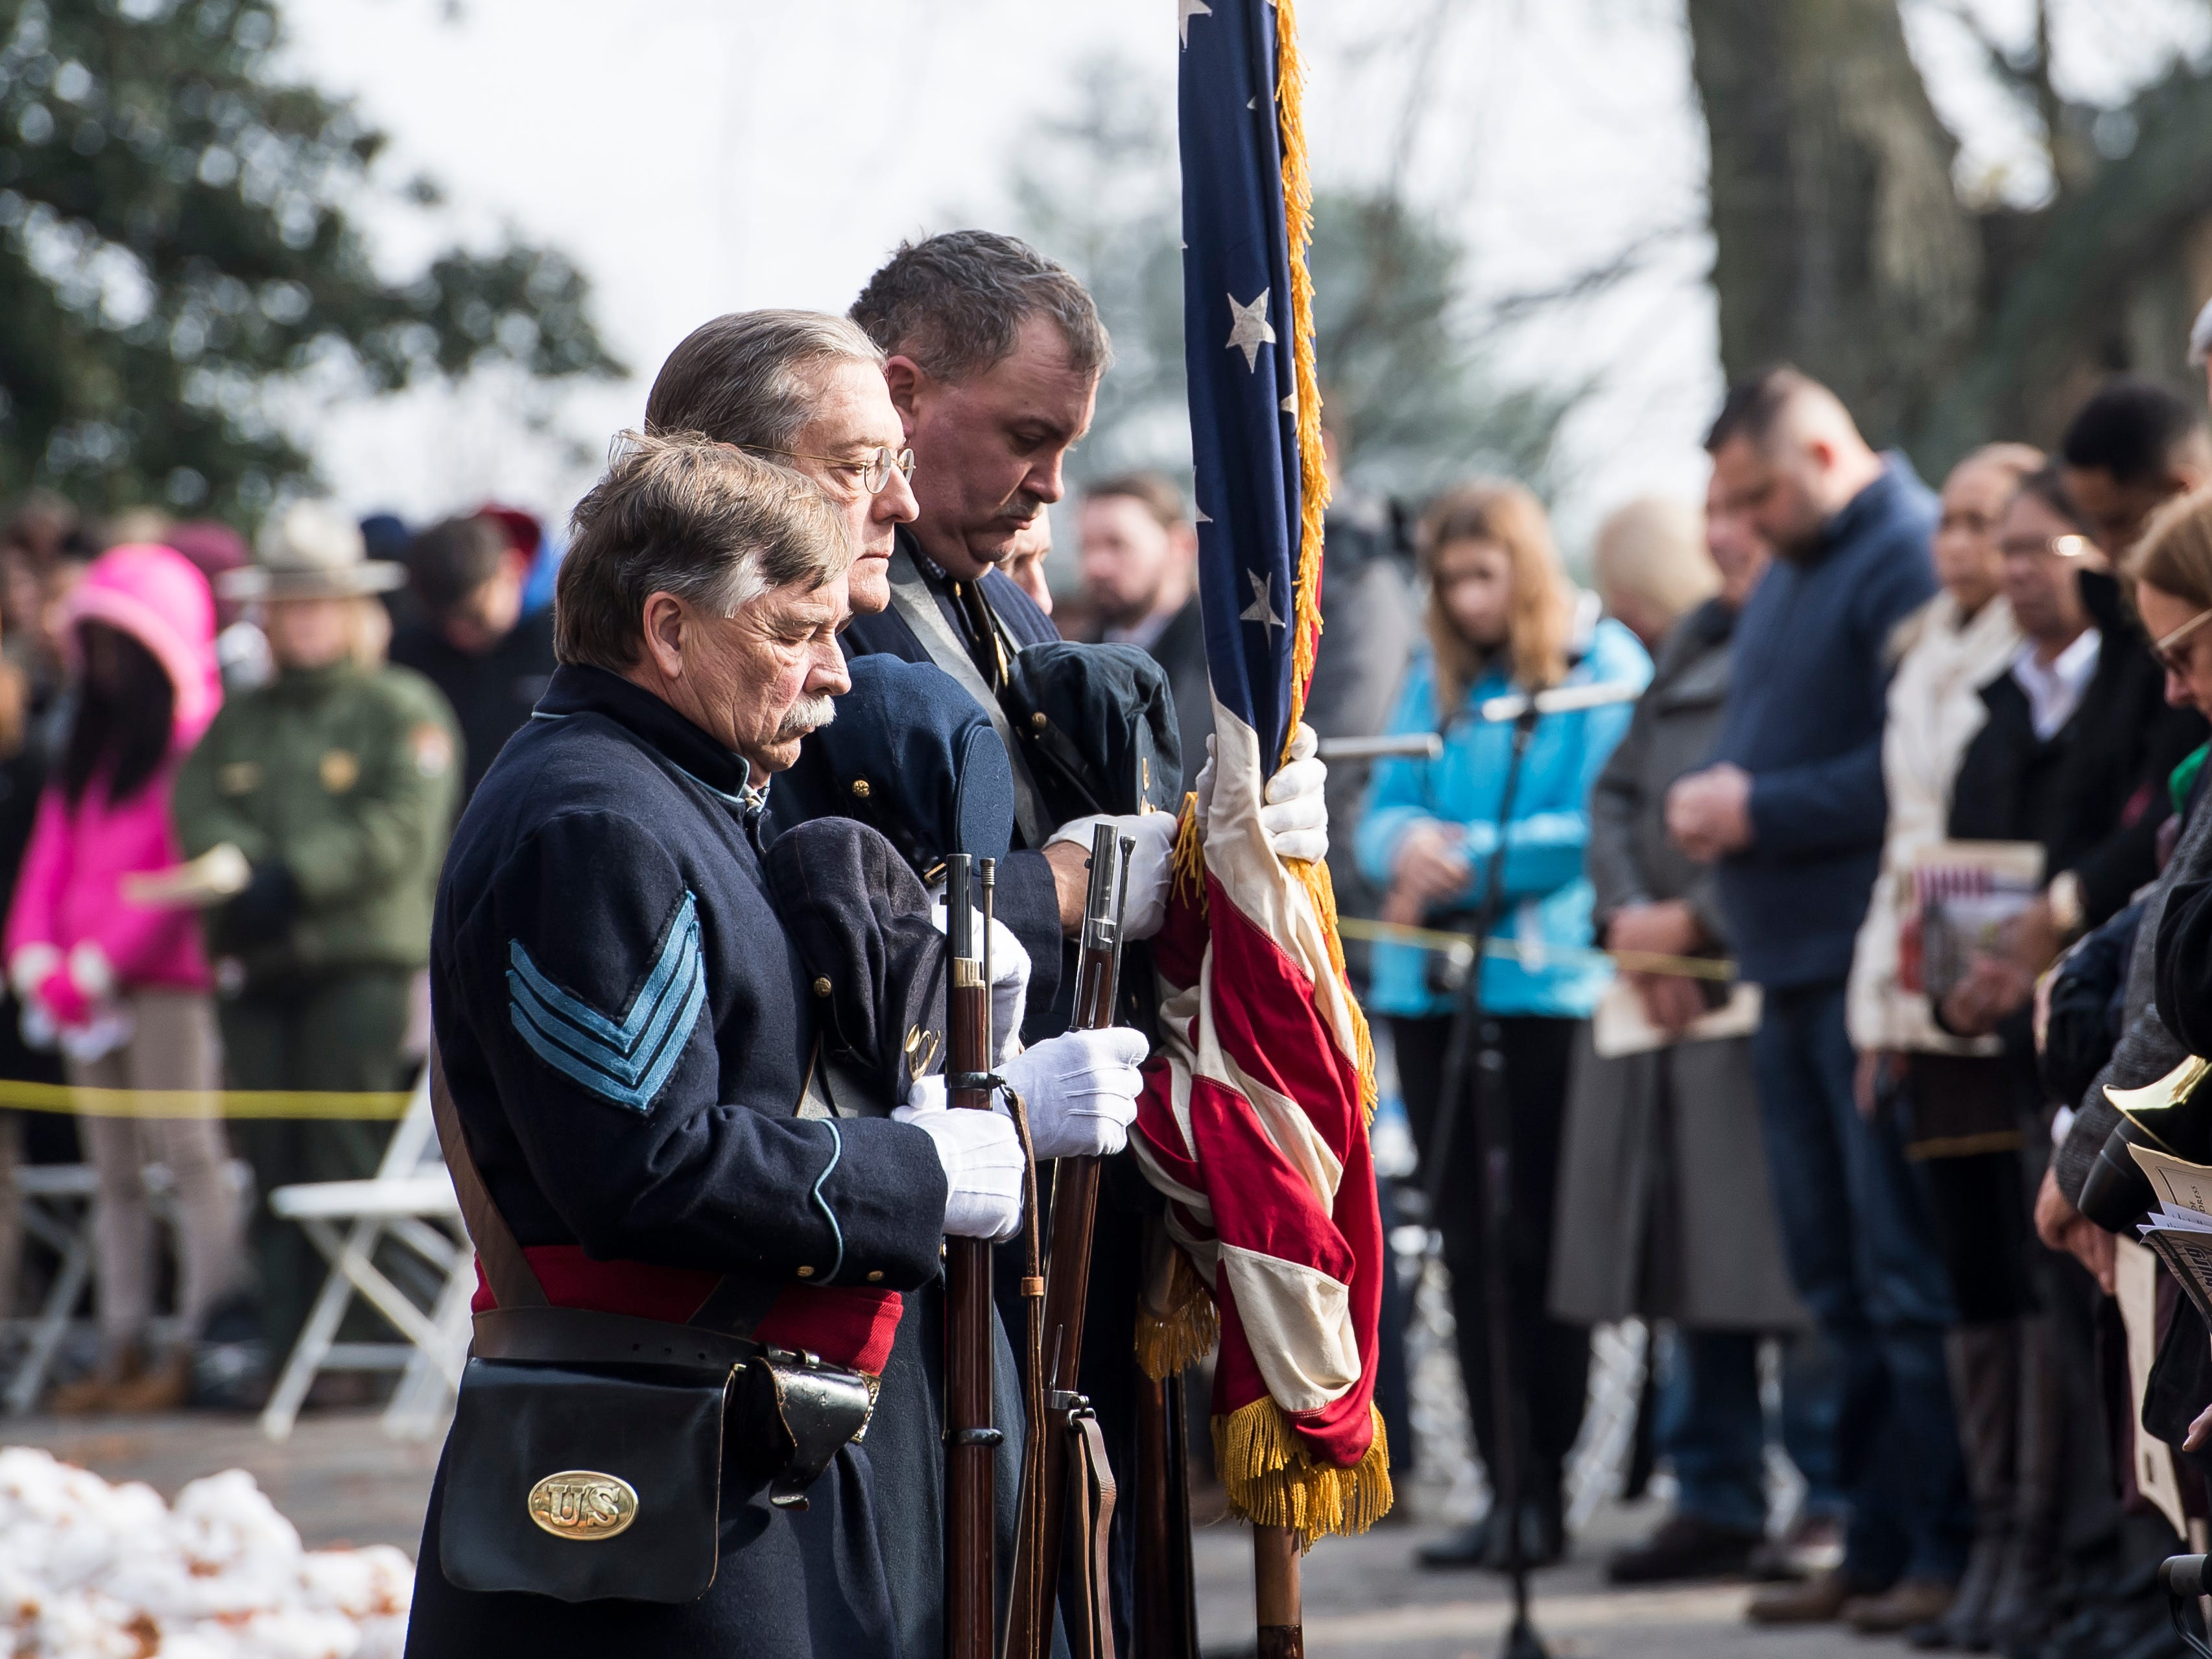 Members of the 11th PA Volunteer Infantry Fife and Drum Corps Color Guard bow their heads in prayer during Dedication Day in Gettysburg National Cemetery on November, 19, 2018.